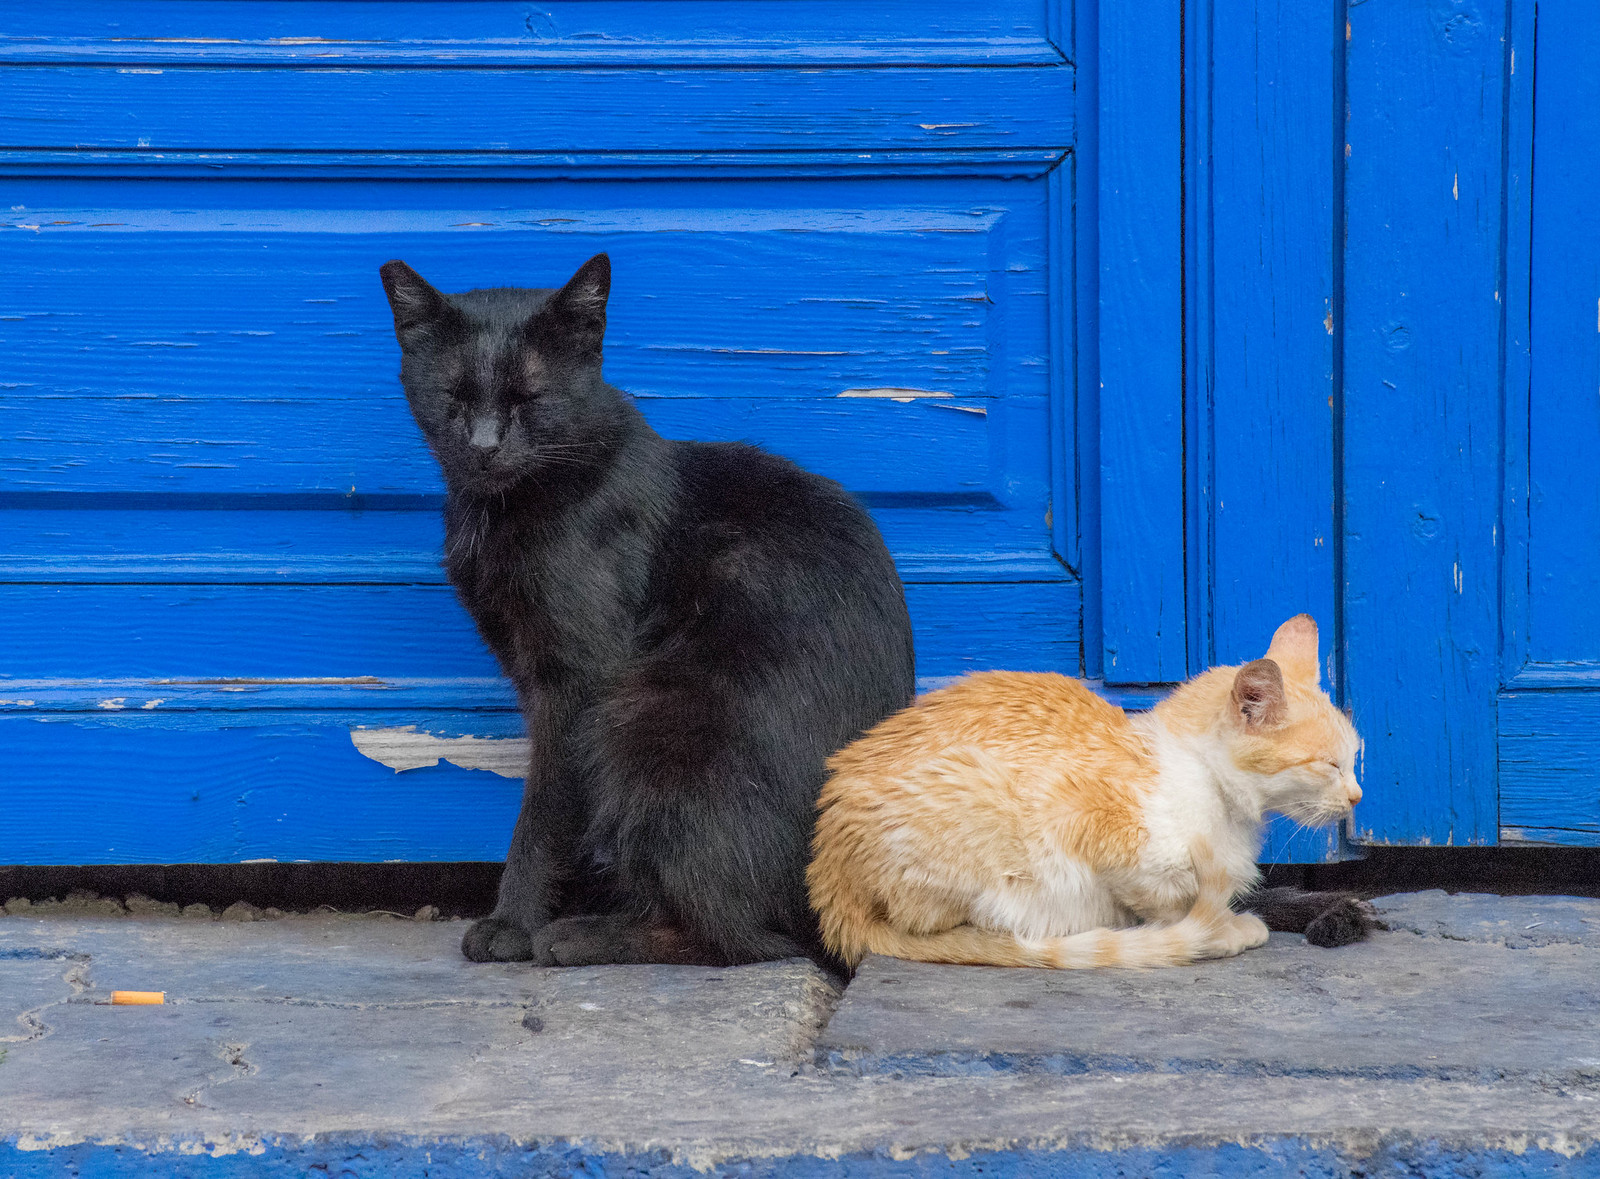 It's Raining Cats & Cats in Morocco! - Travel Bliss Now